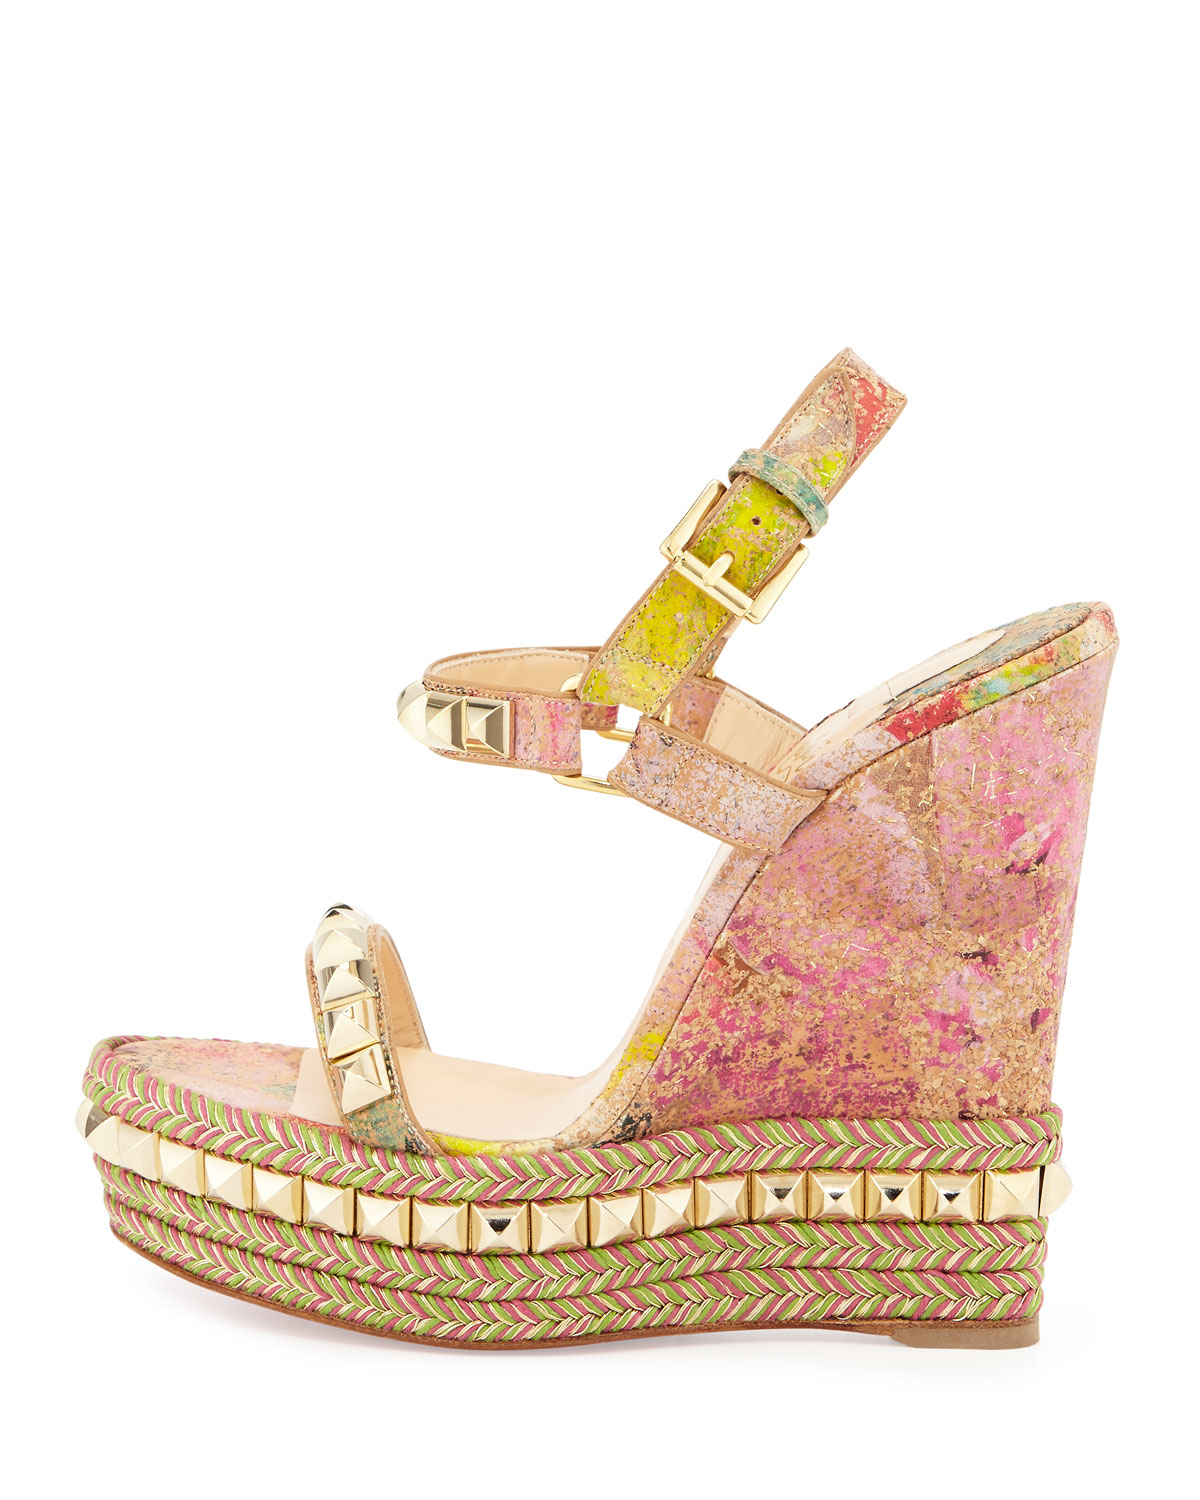 christian louboutin slide sandals Pink leather | cosmetics digital ...